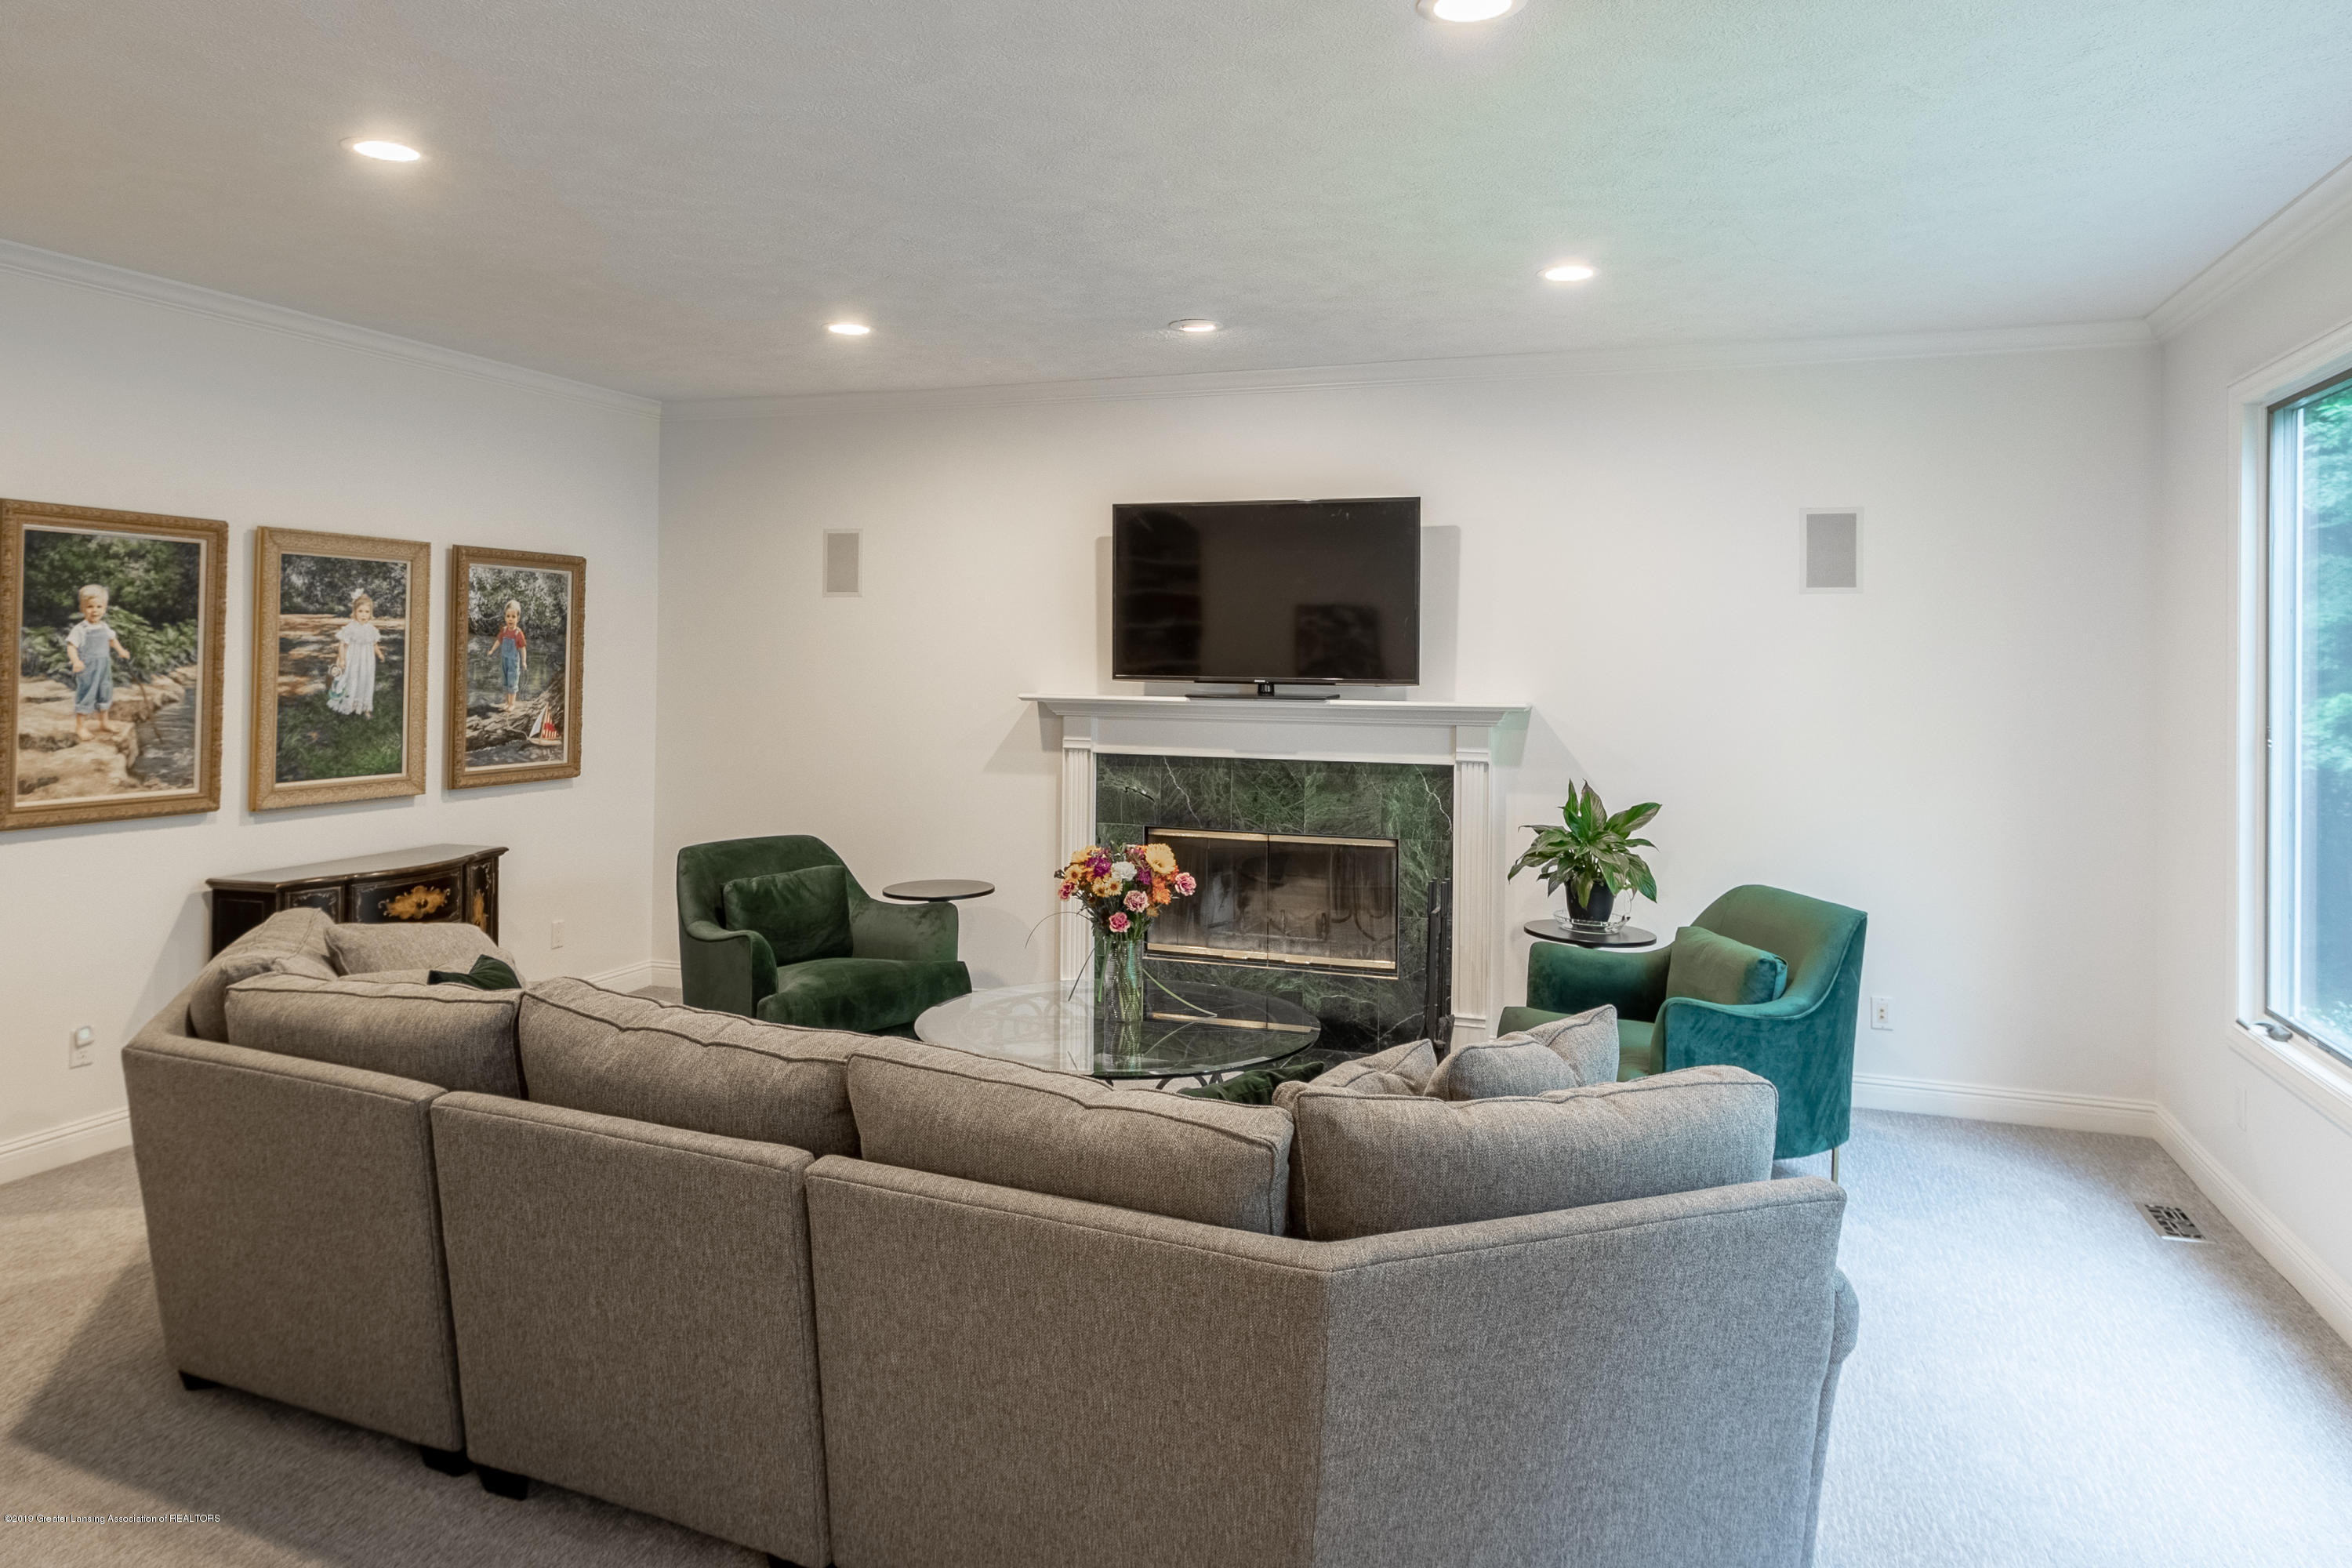 3700 Beech Tree Ln - FAMILY ROOM - 25